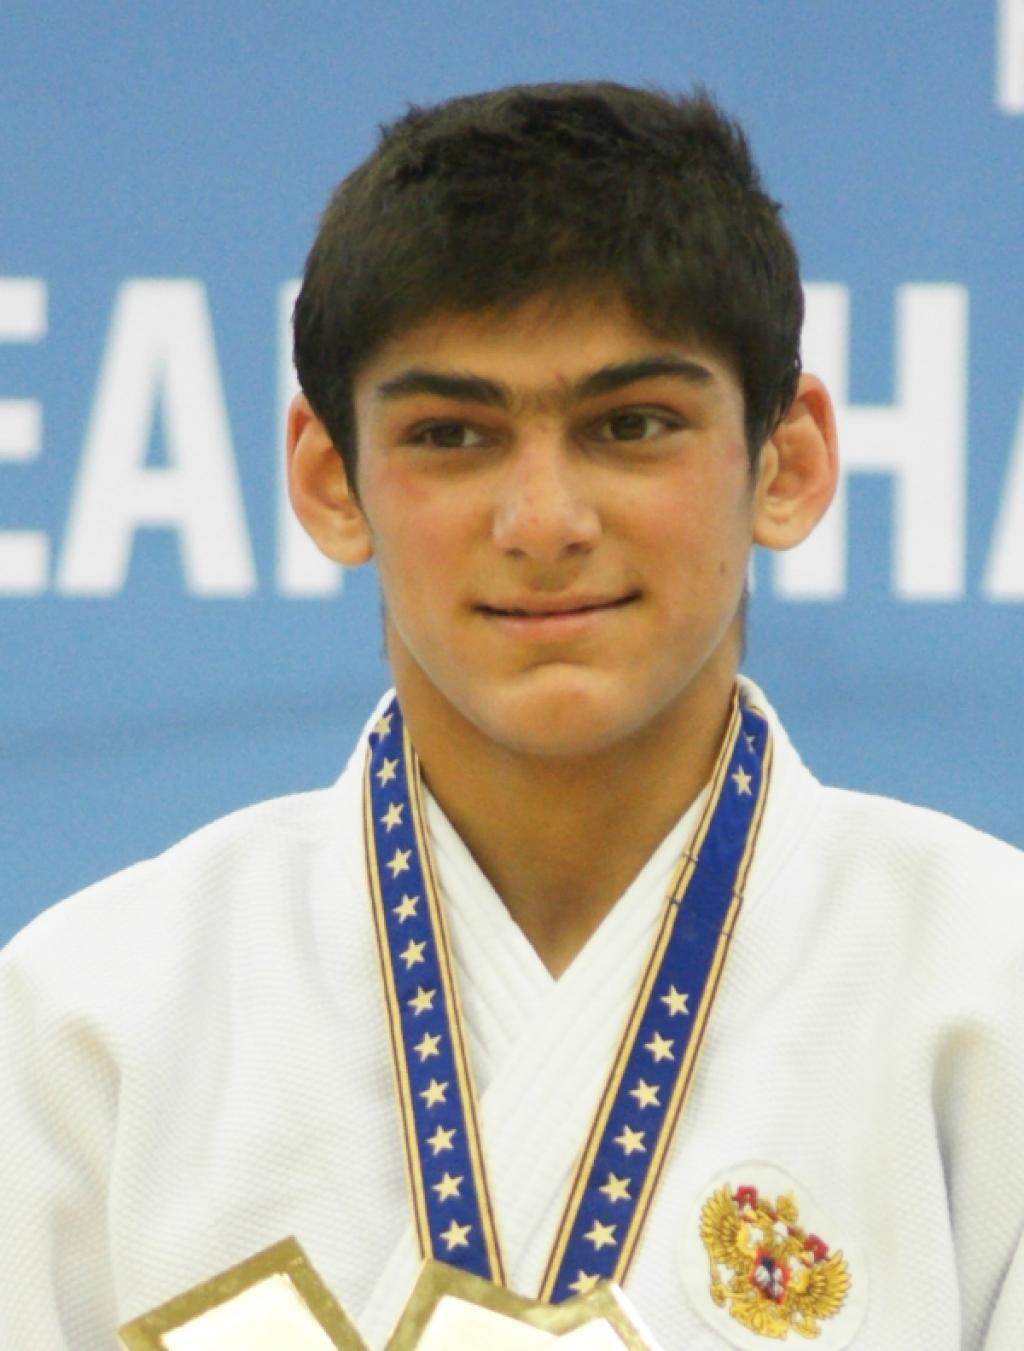 Sakhavat Gadzhiev takes second world title